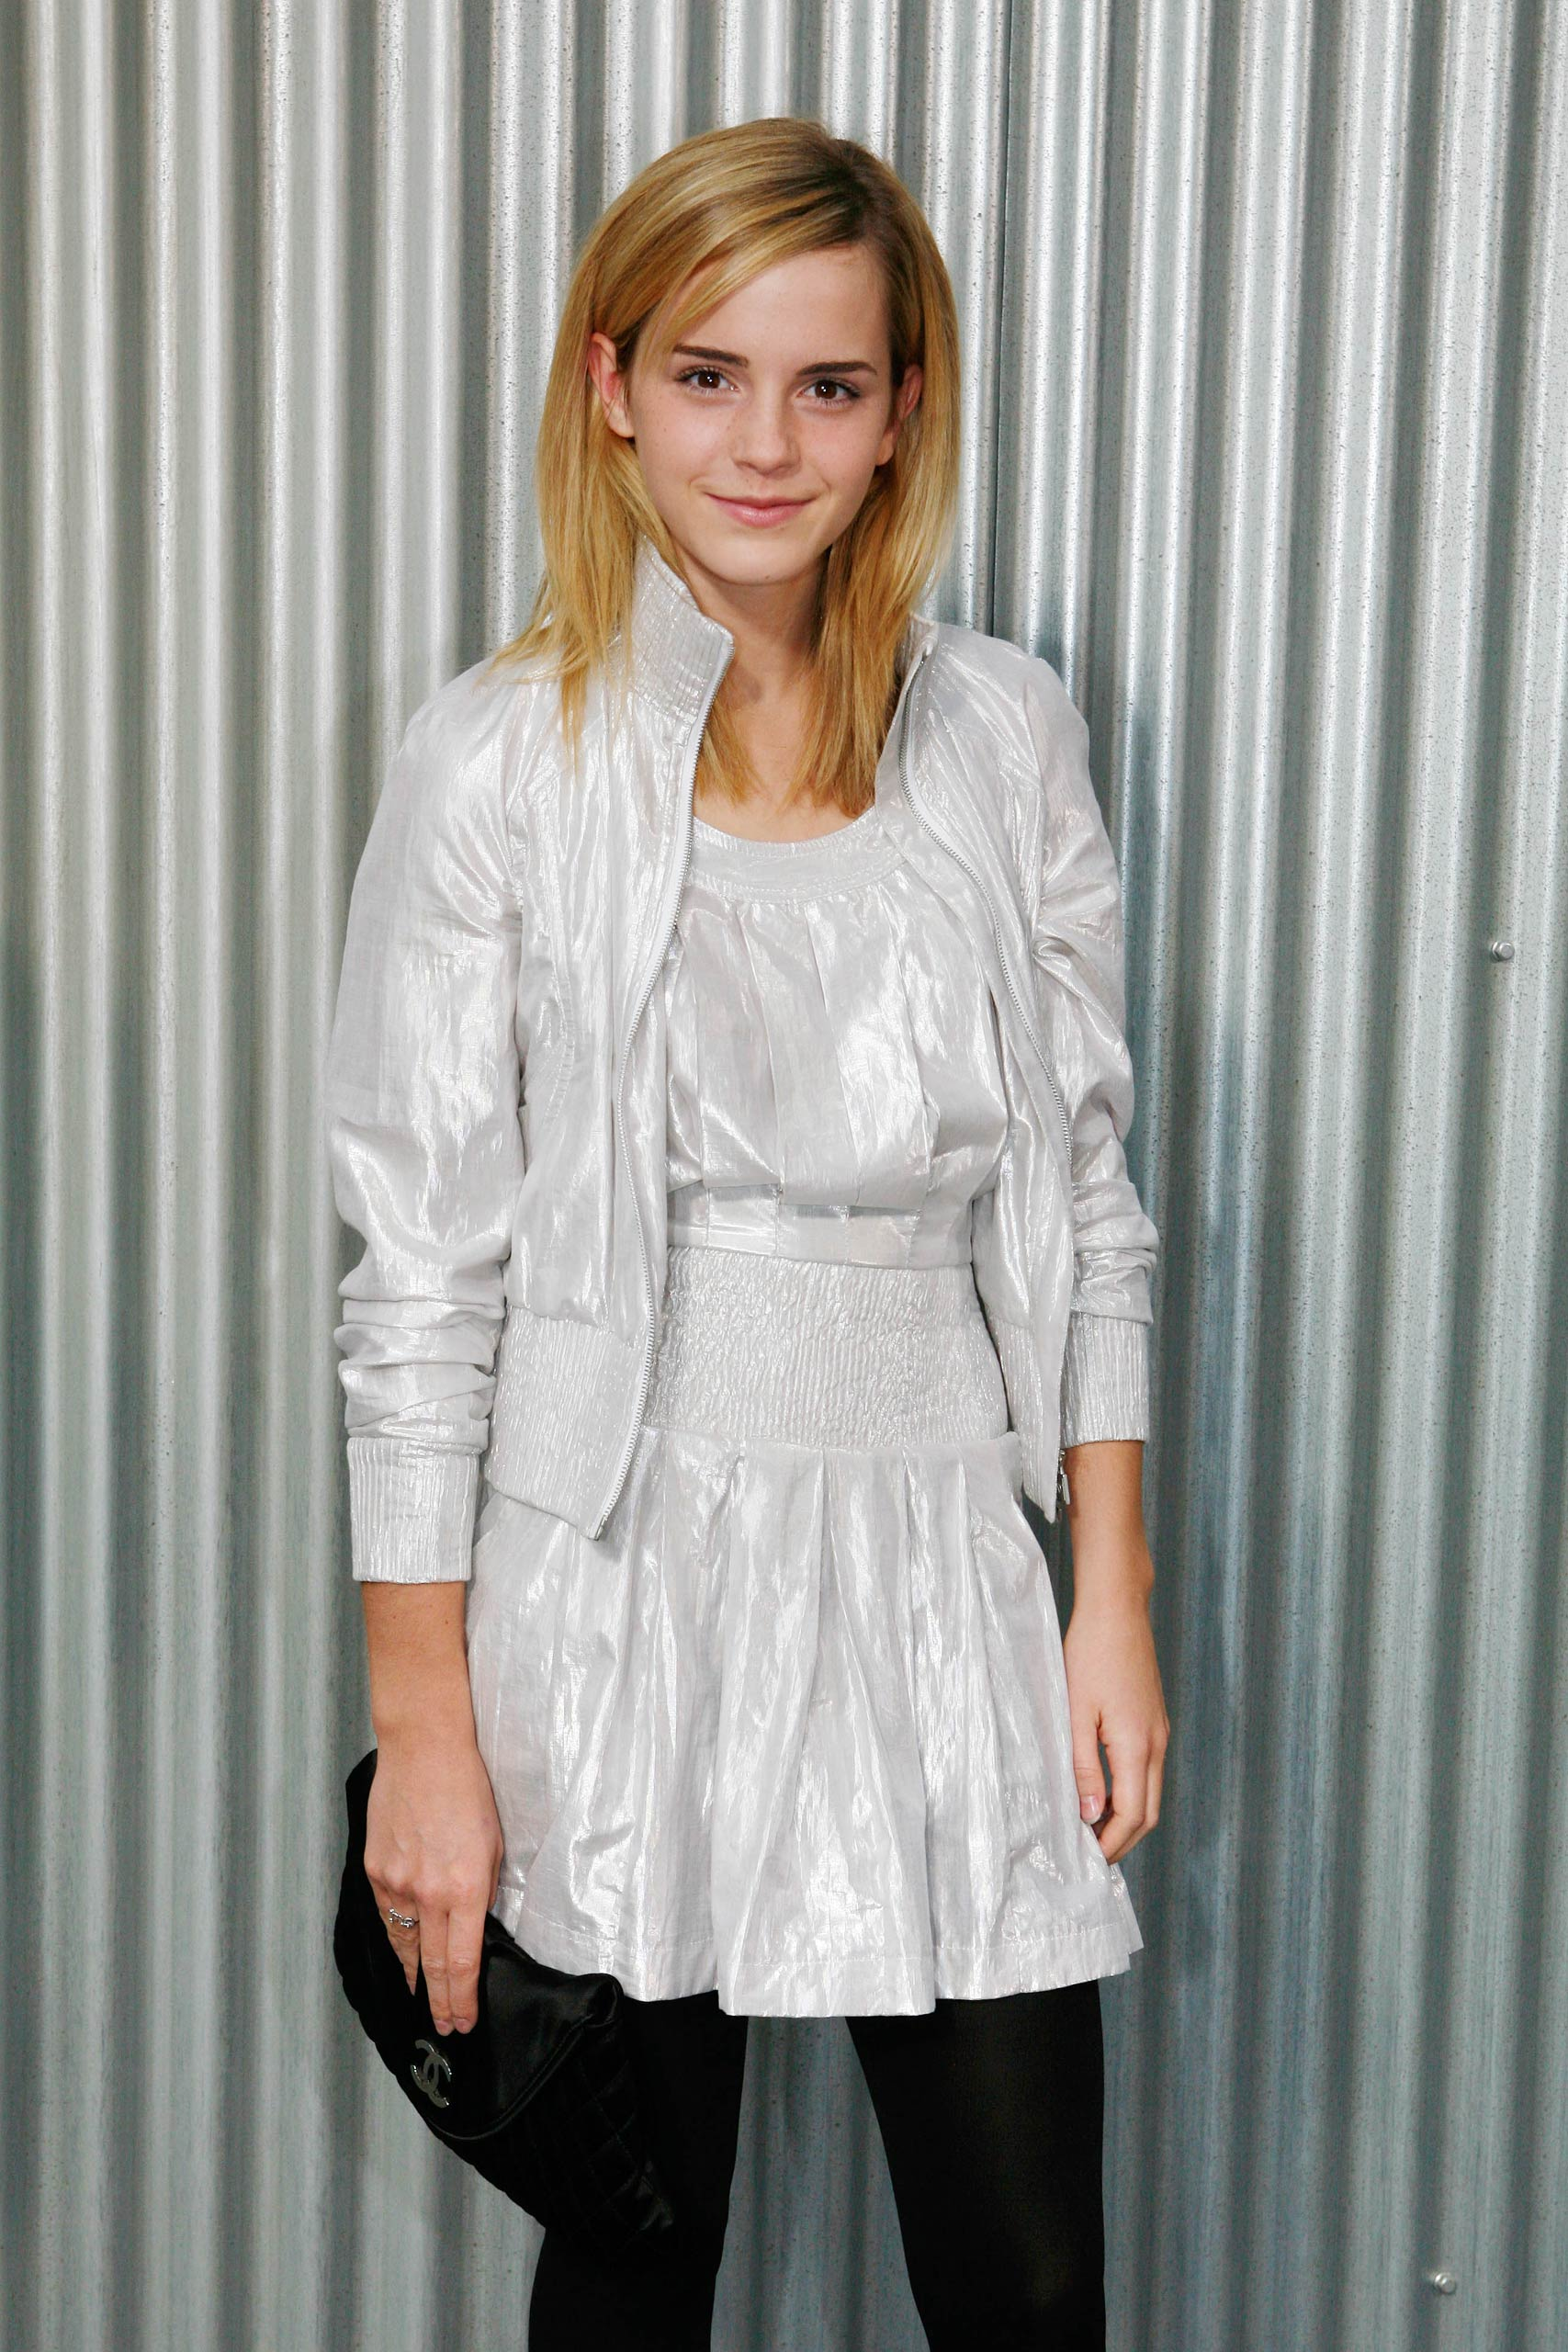 British actress Emma Watson is seen at Chanel's spring-summer 2009 ready-to-wear collection designed by German fashion designer Karl Lagerfeld, in Paris in 2008.